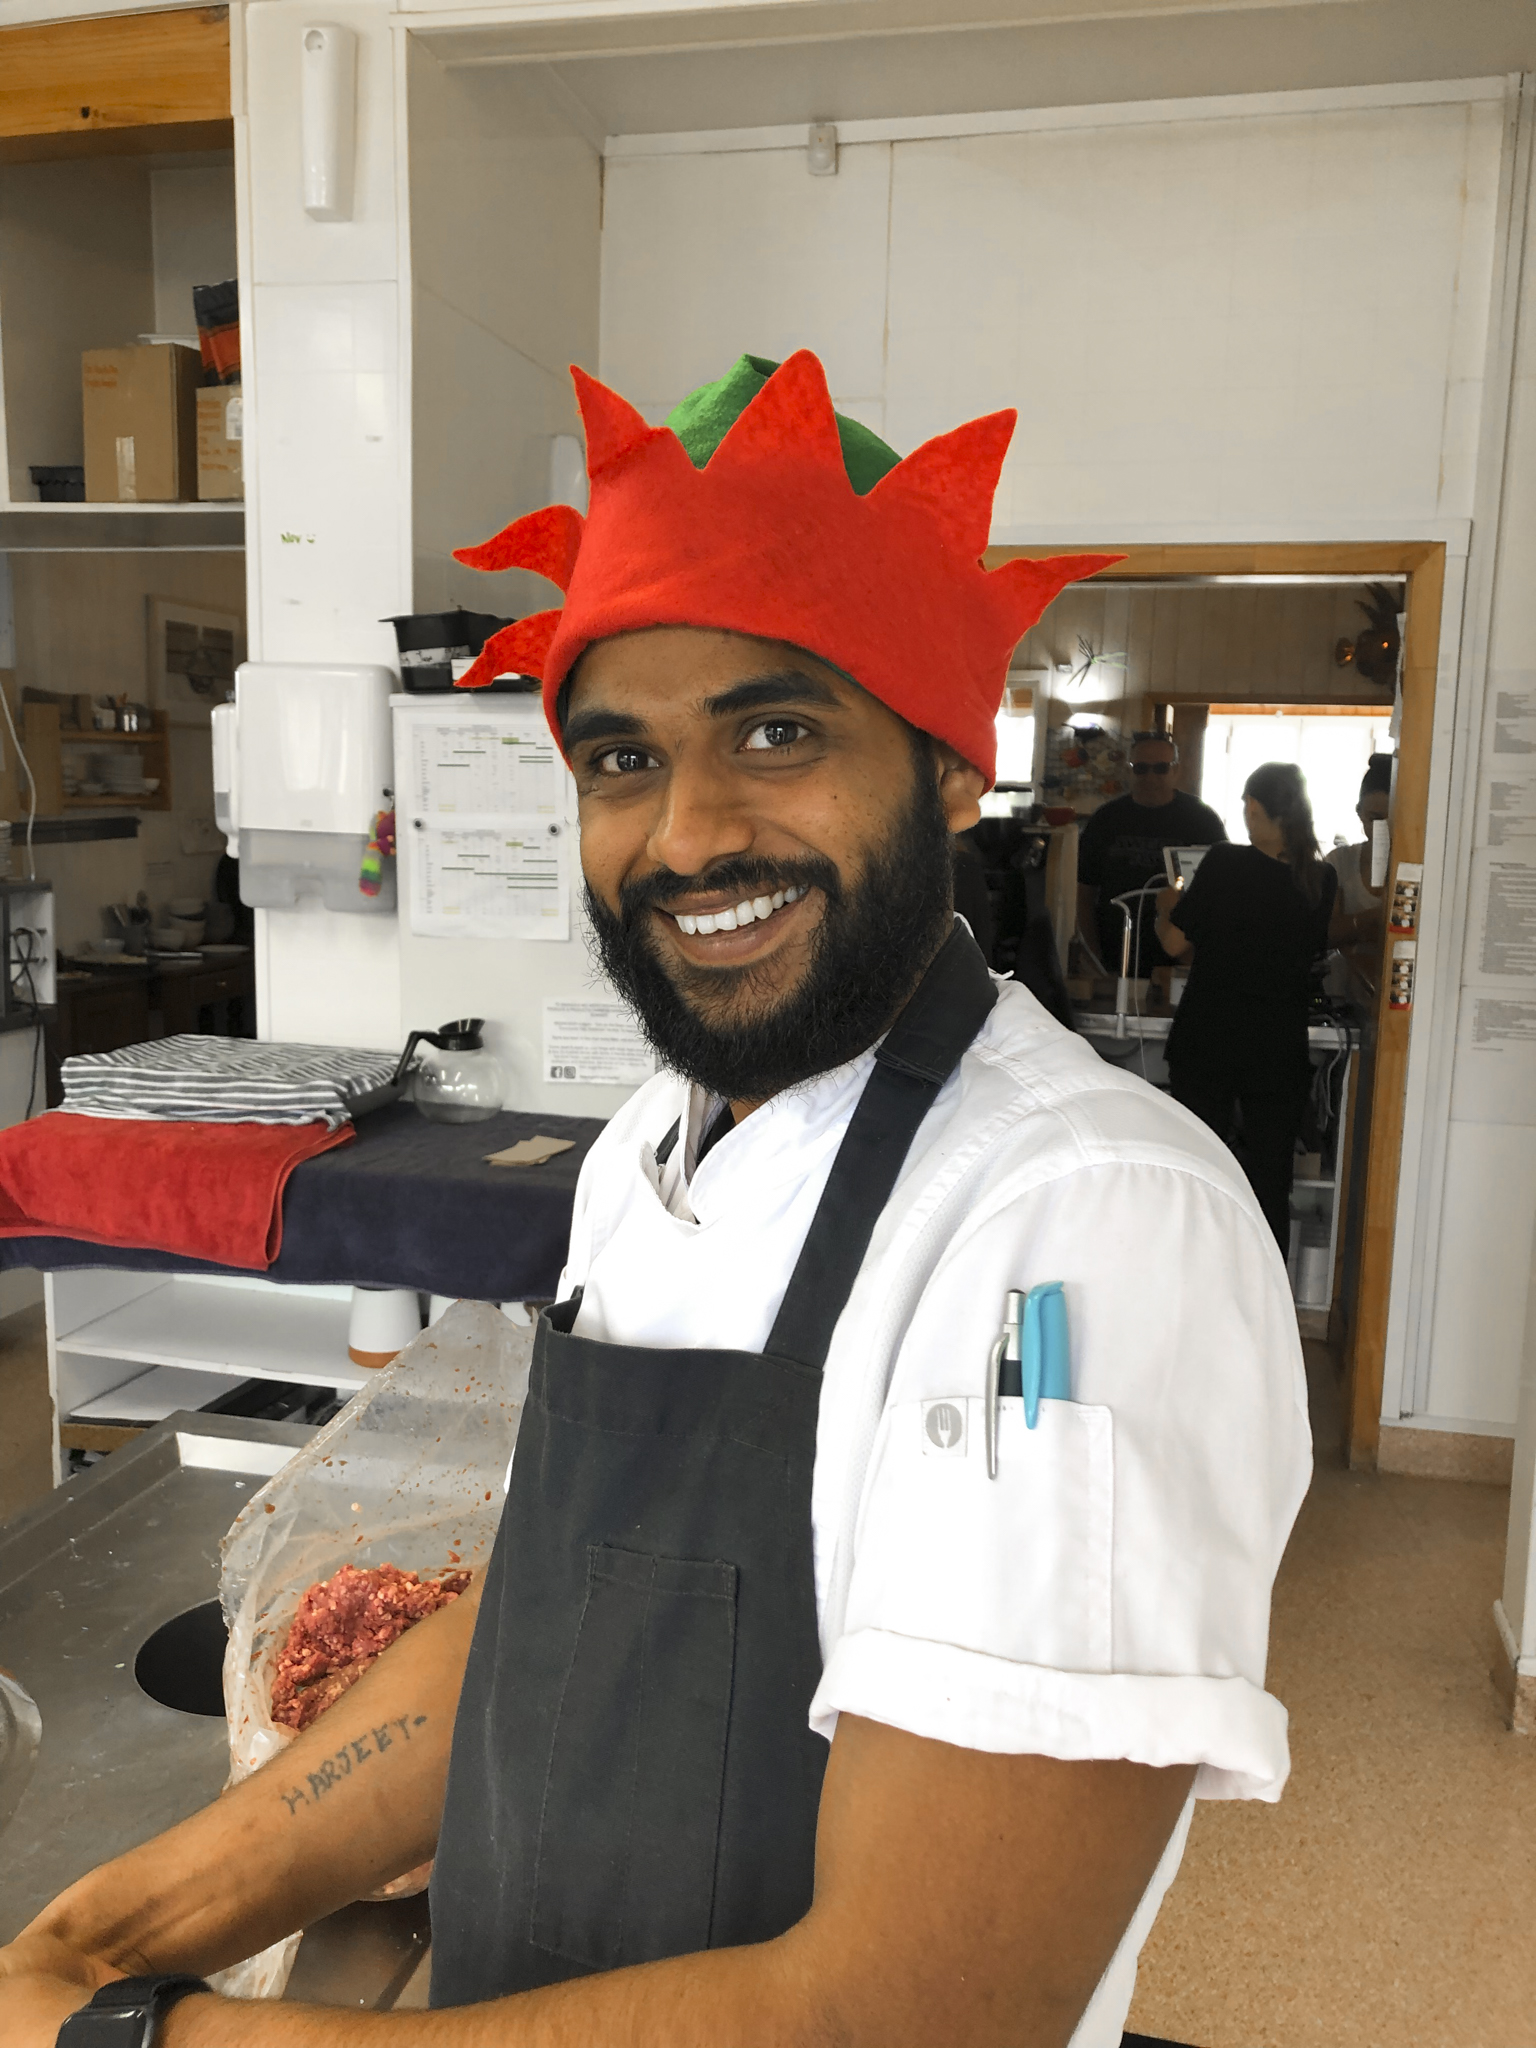 Our chefs love christmas